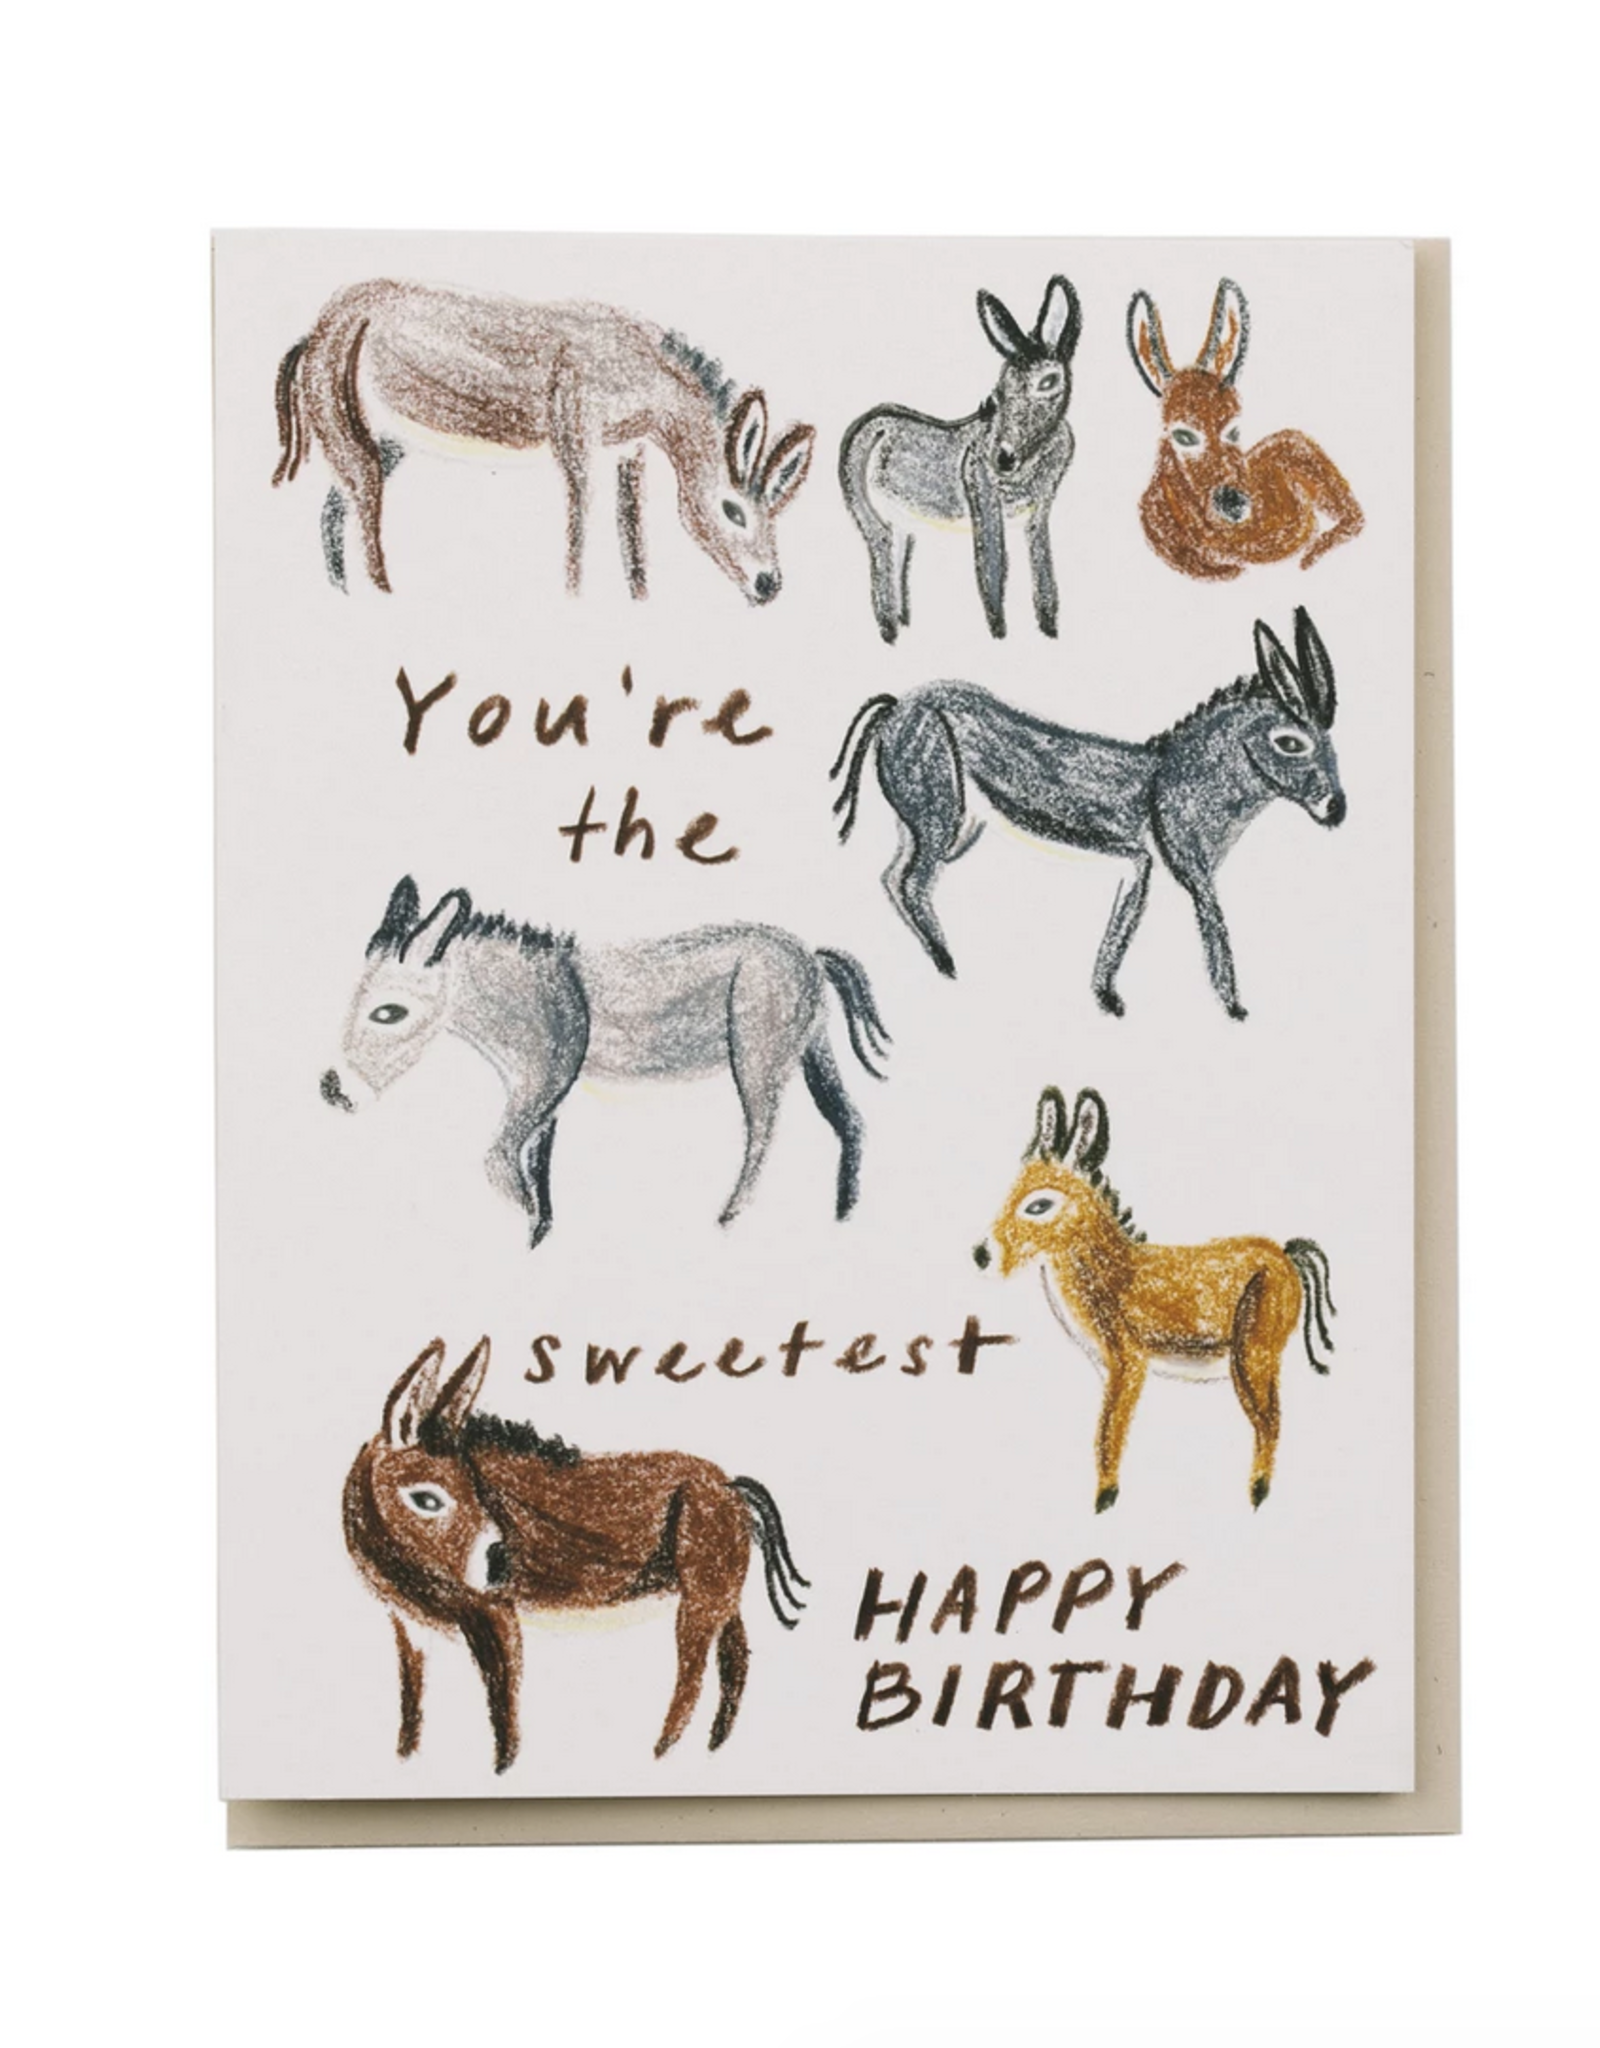 You're the Sweetest Happy Birthday (Donkeys) Greeting Card